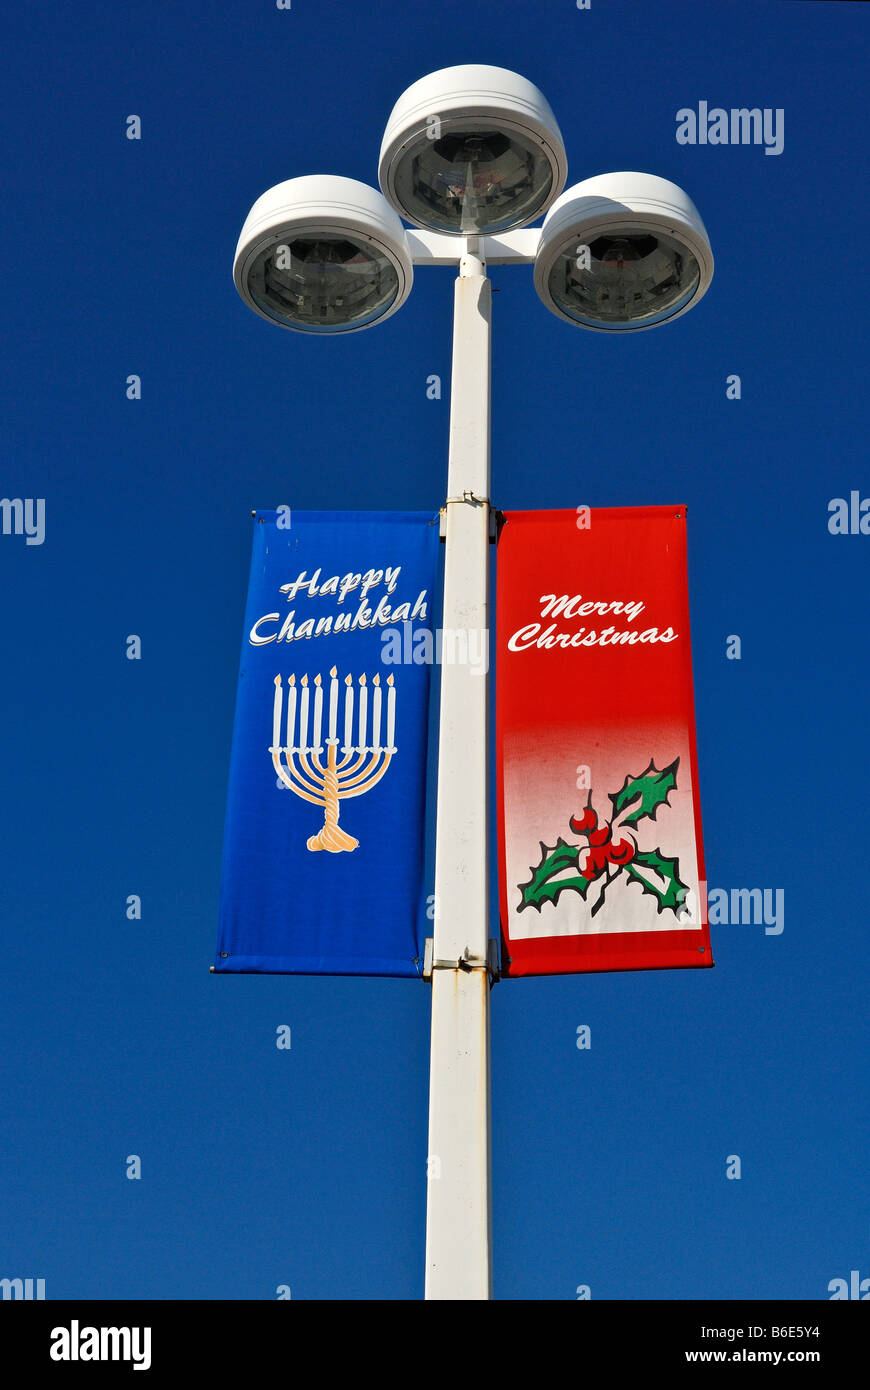 parking lights with flags displaying Happy Chanukkah/Merry Christmas greetings - Stock Image